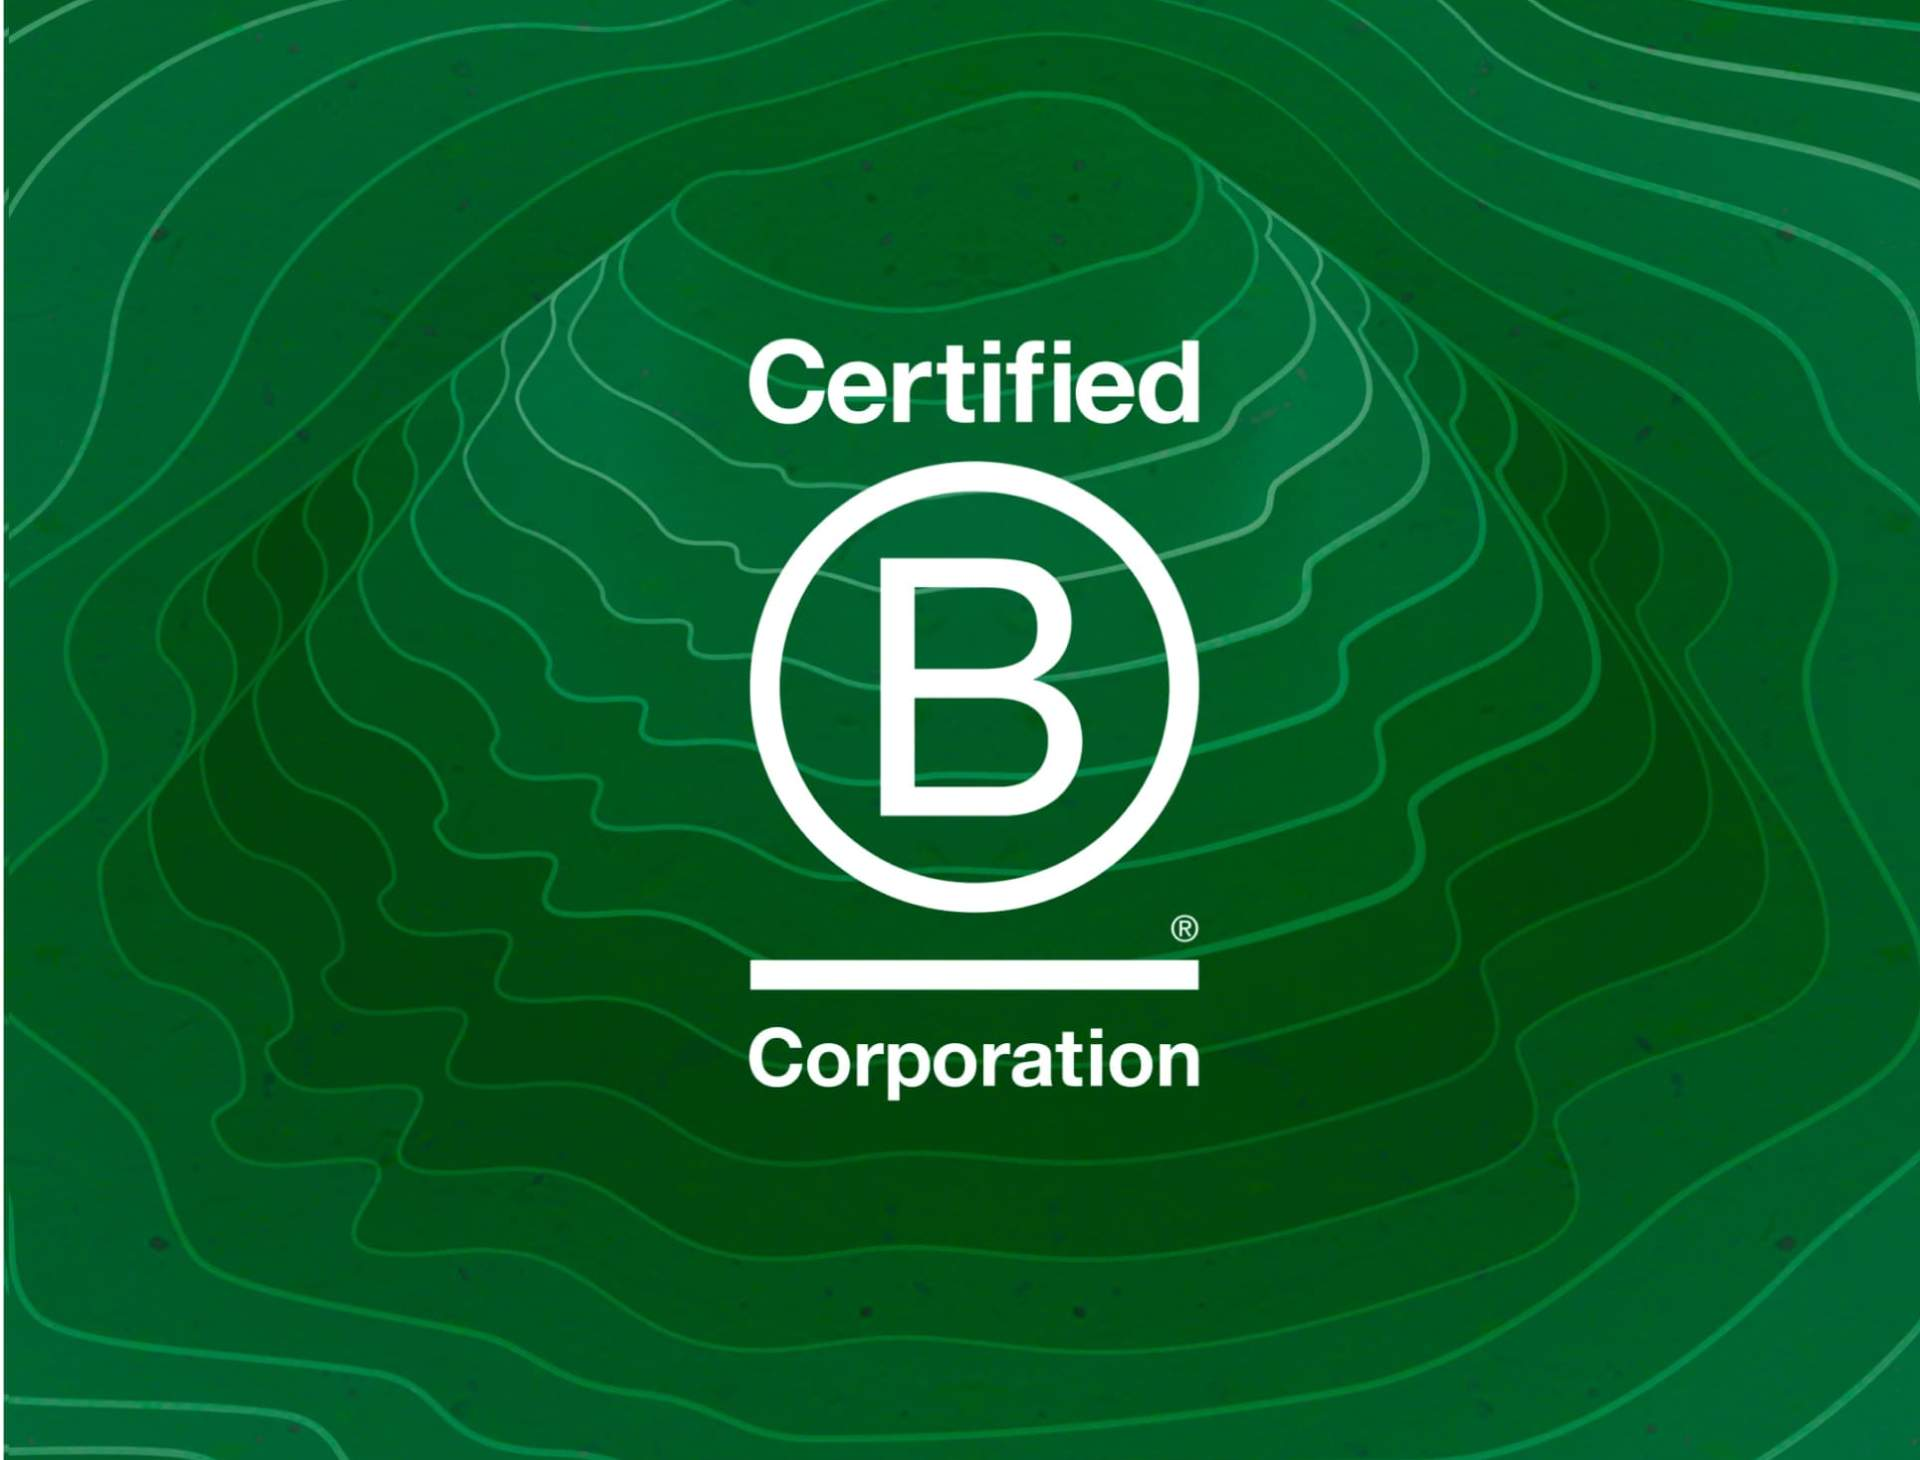 Volvic is a B Corp™ Certified Corporation